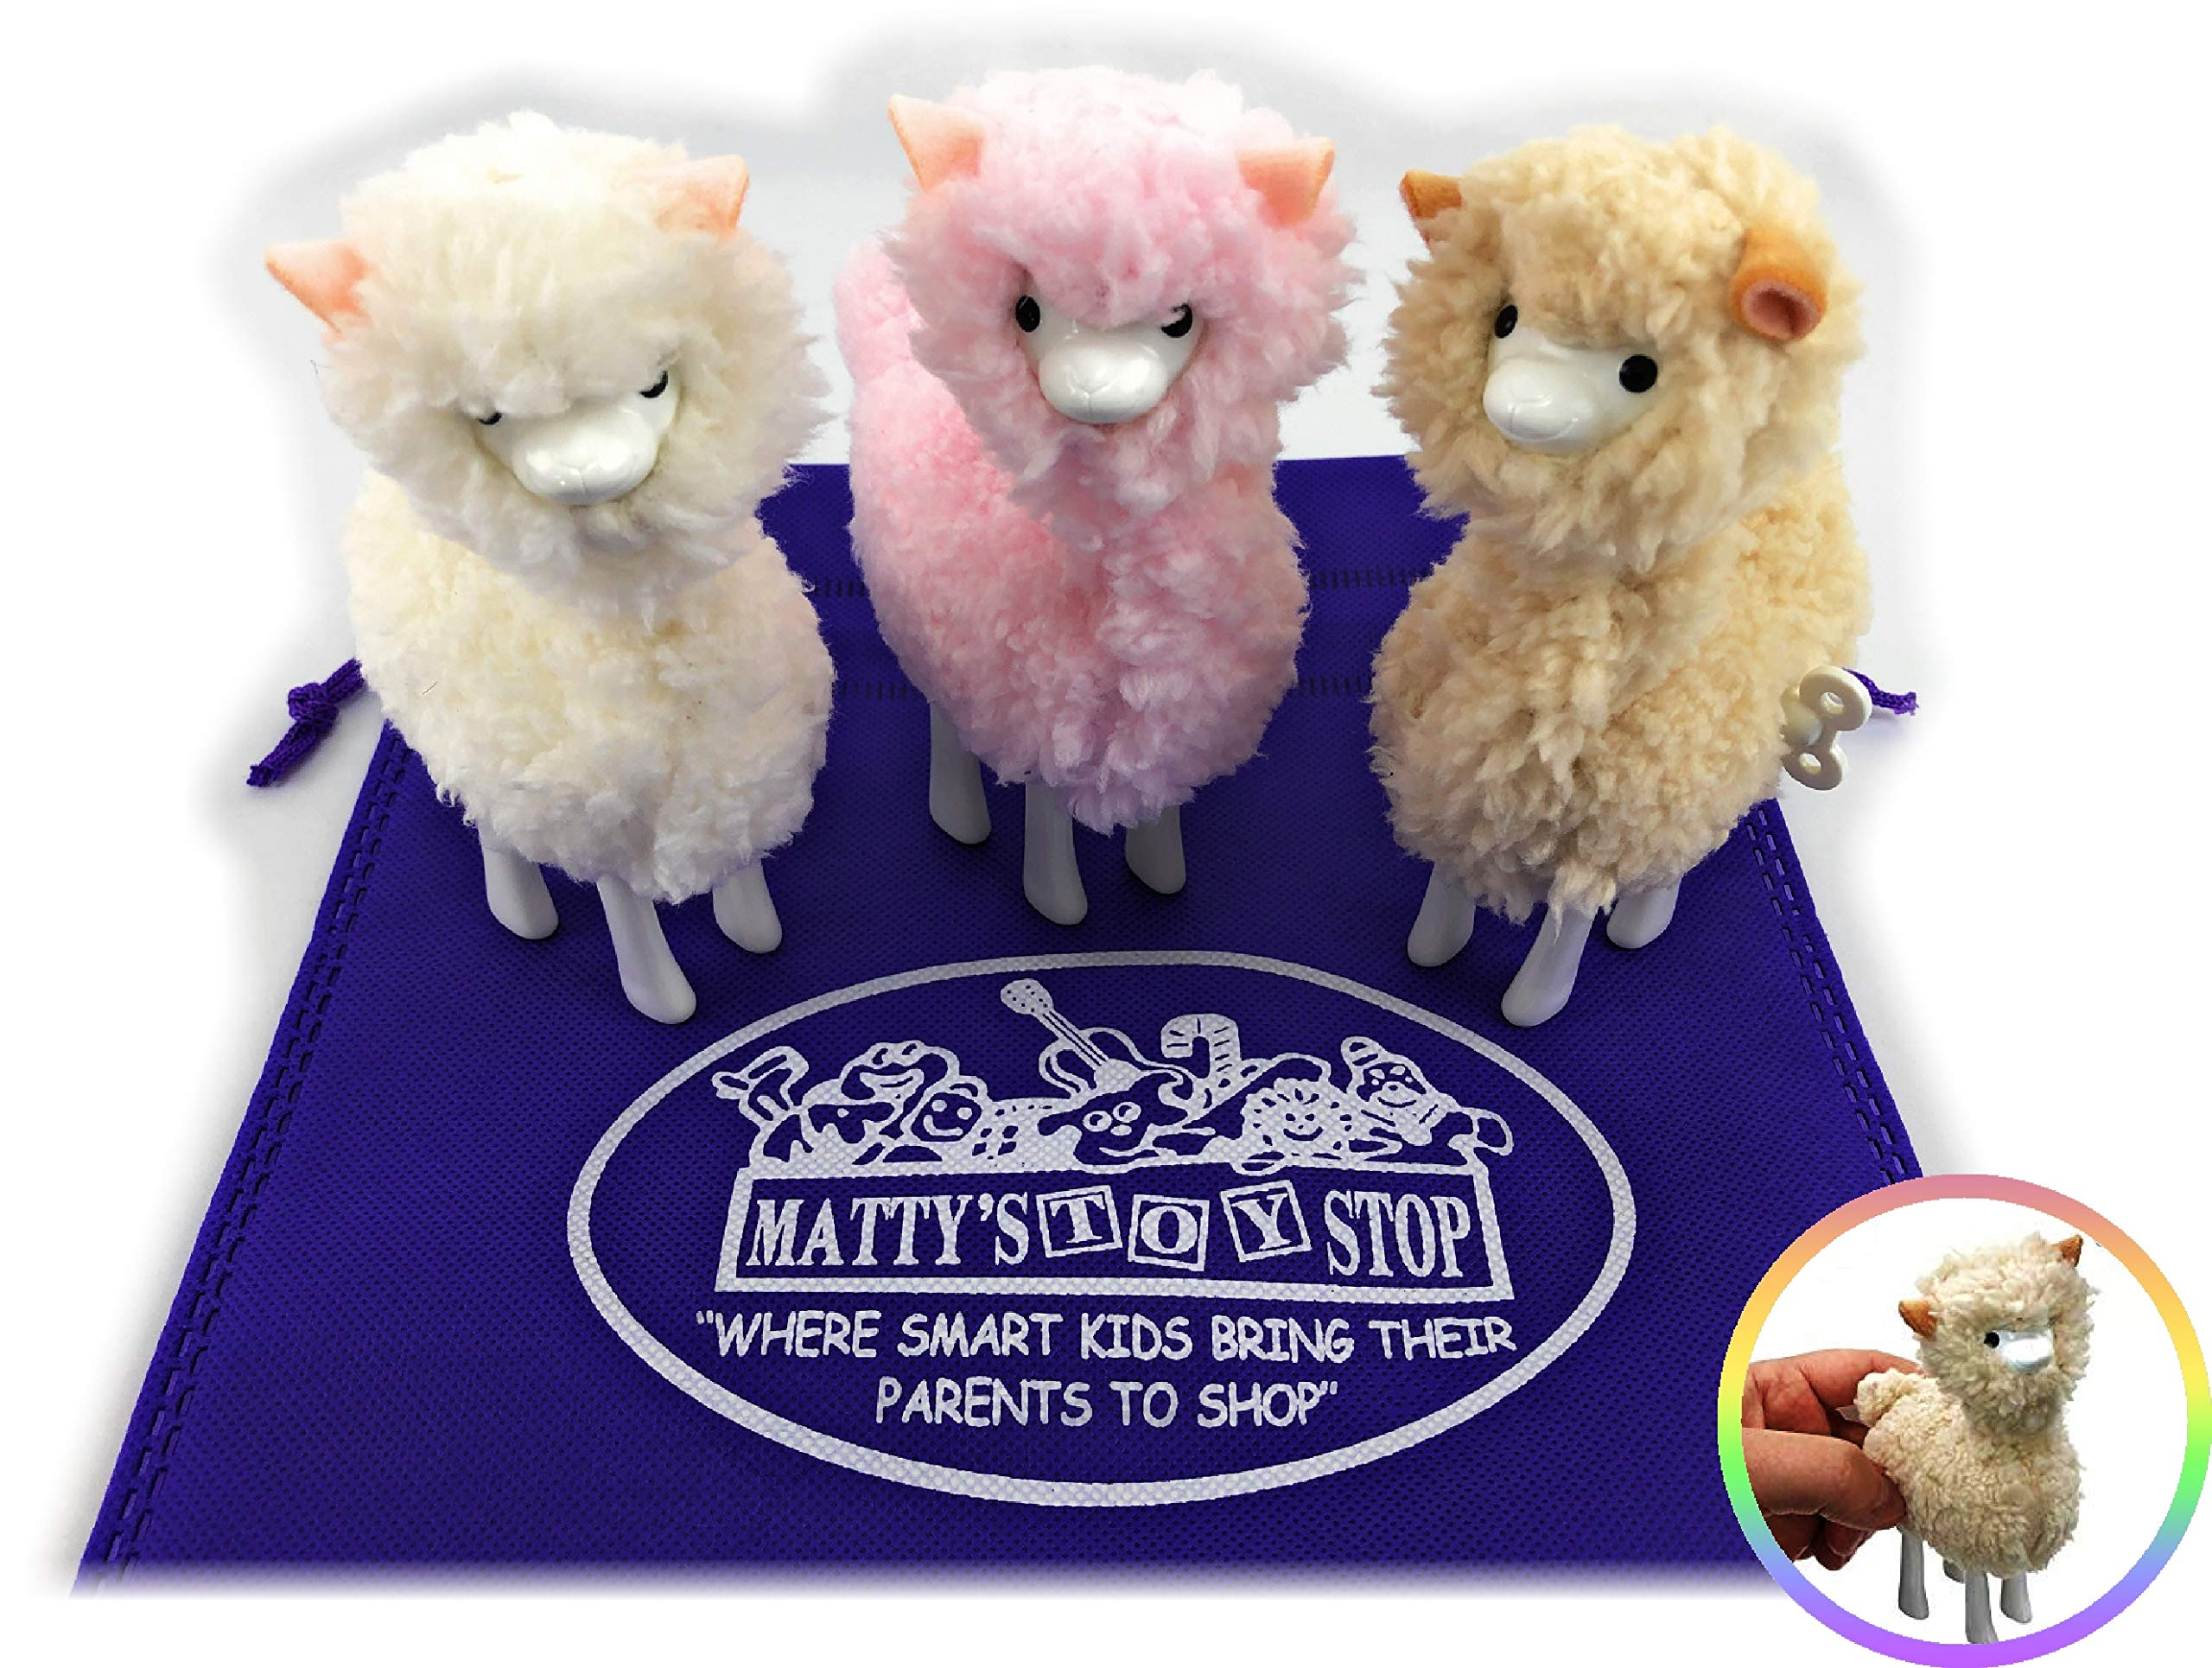 Schylling Llama Wind-Up Walkers White, Pink & Beige Gift Set Bundle with Matty's Toy Stop Storage Bag - 3 Pack by Schylling (Image #2)